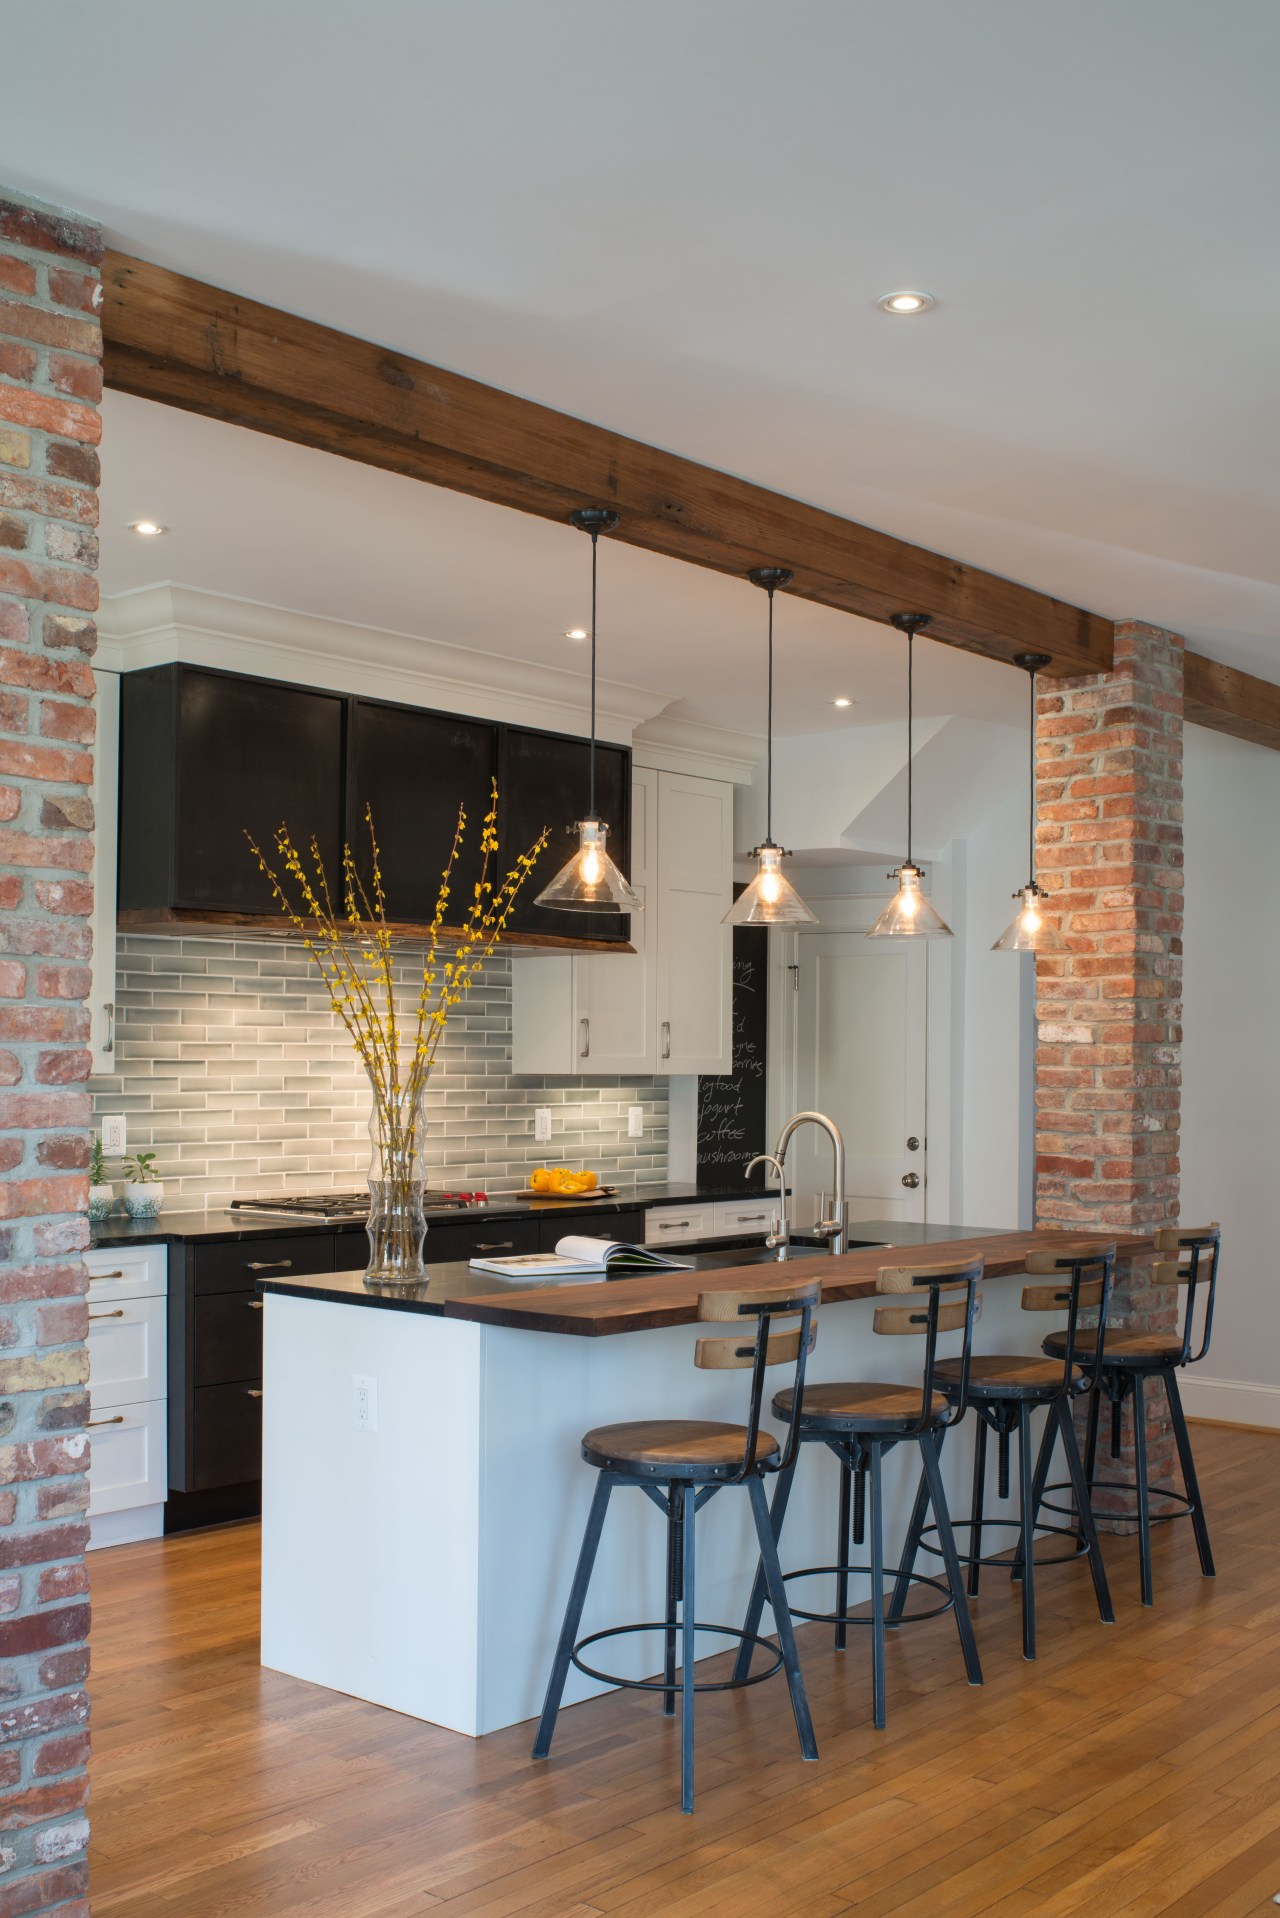 This reinvented kitchen is graced with simplified versions cabinetry, benchtop, dining room, floor, flooring, hardwood, interior design, kitchen, table, wood flooring, lighting, bar stools